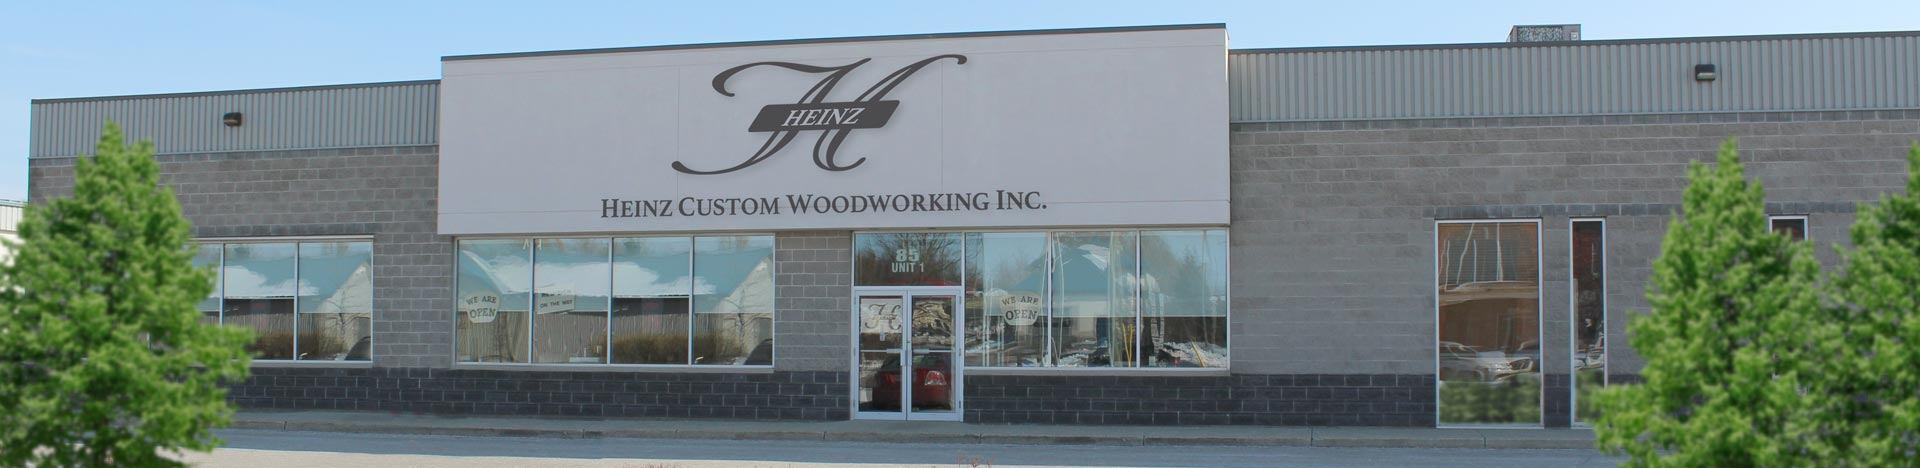 Front of building for Heinz Custom Woodworking